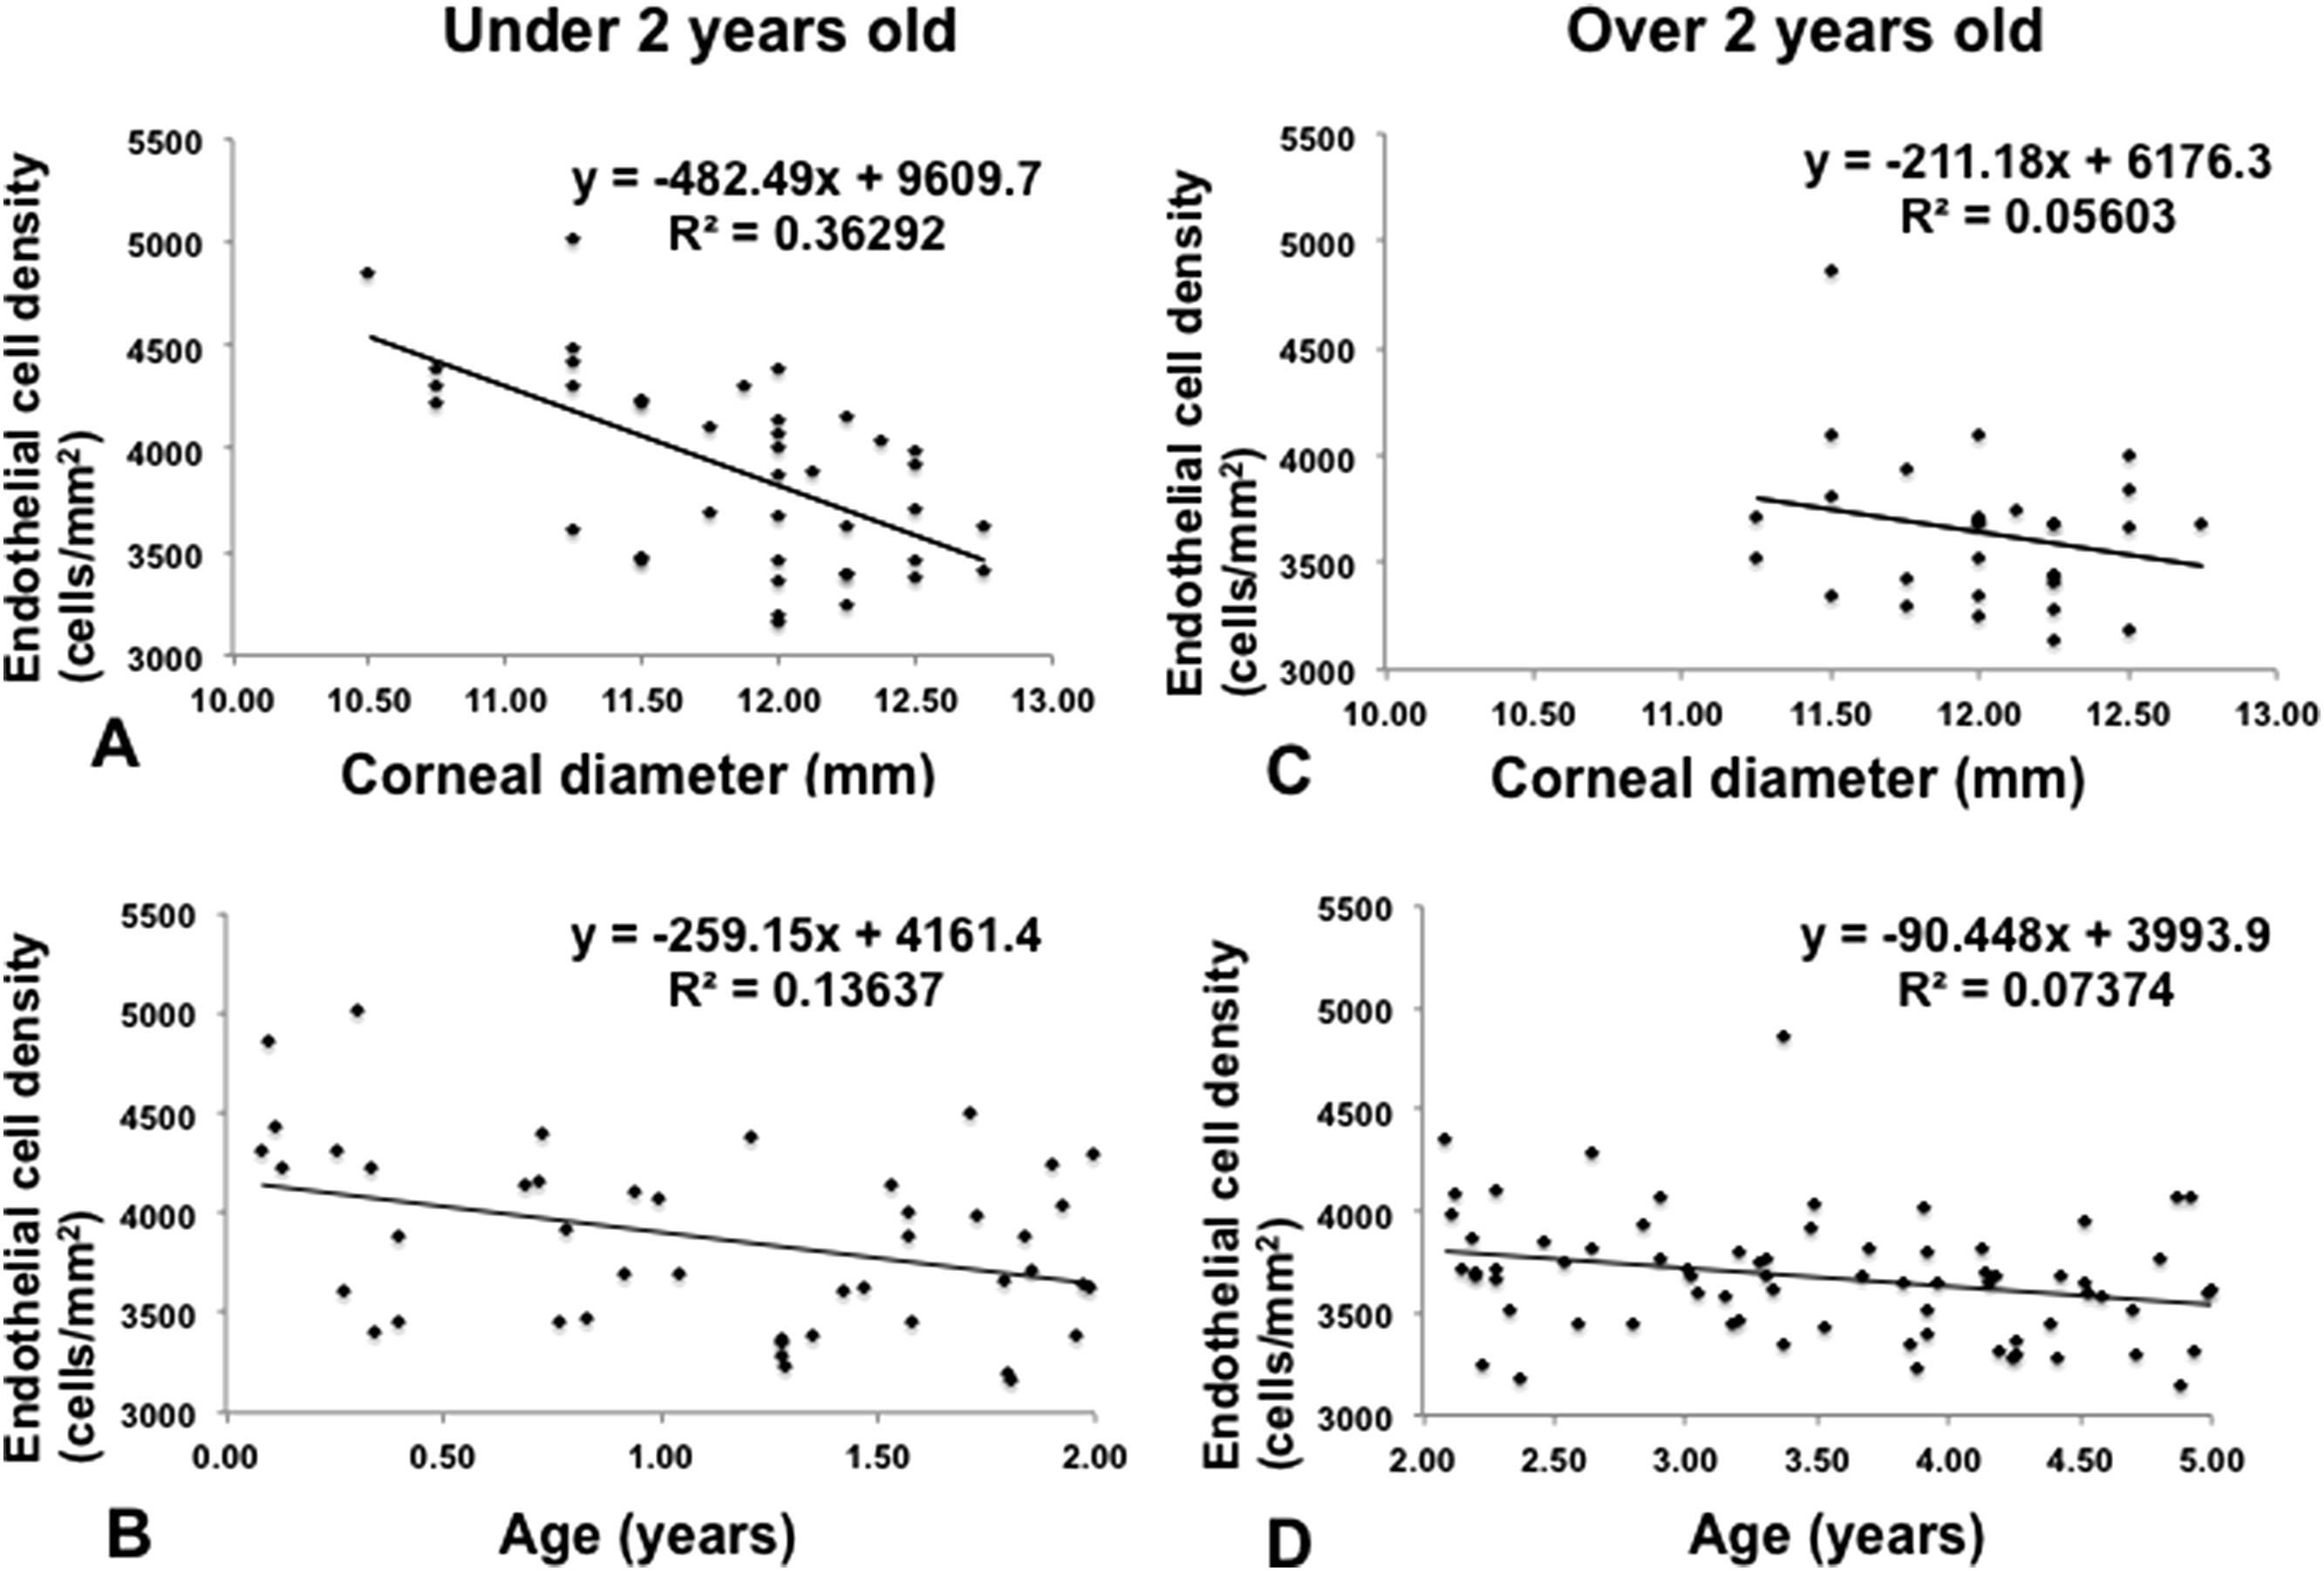 Corneal Endothelial Cell Density In Children Normative Data From Birth To Five Years Old